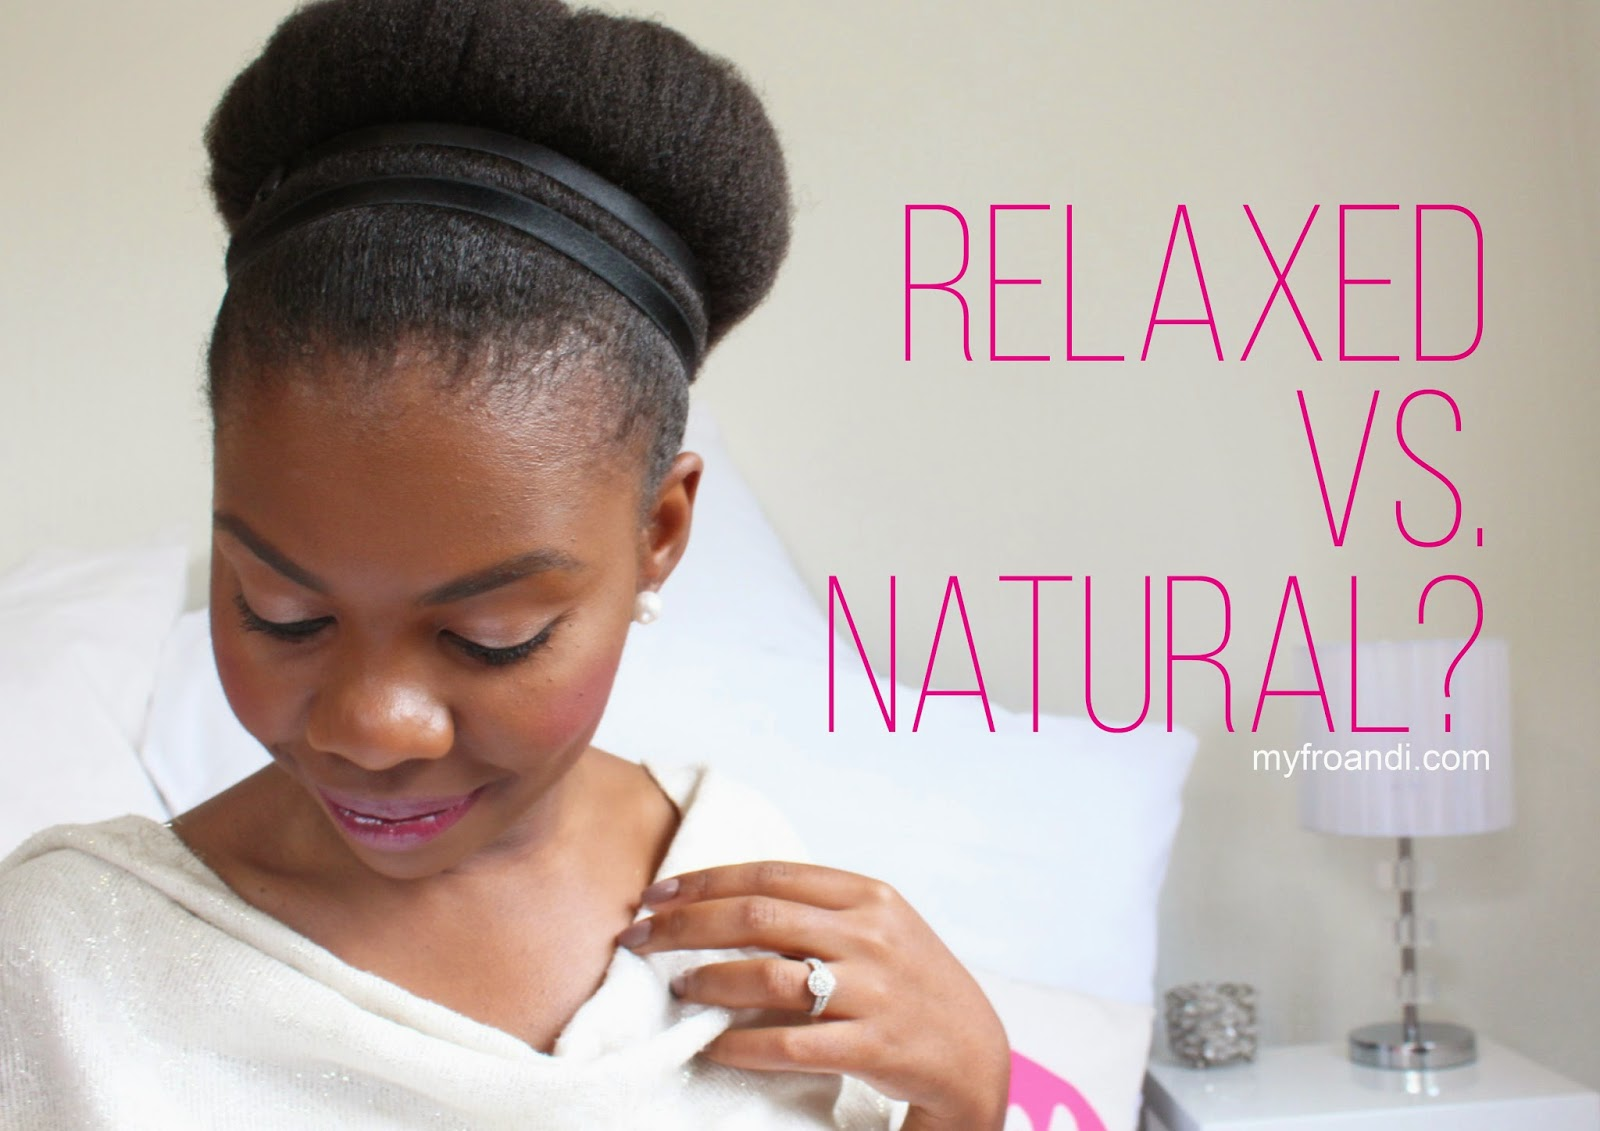 5 Things To Think About When Switching To Natural Hair